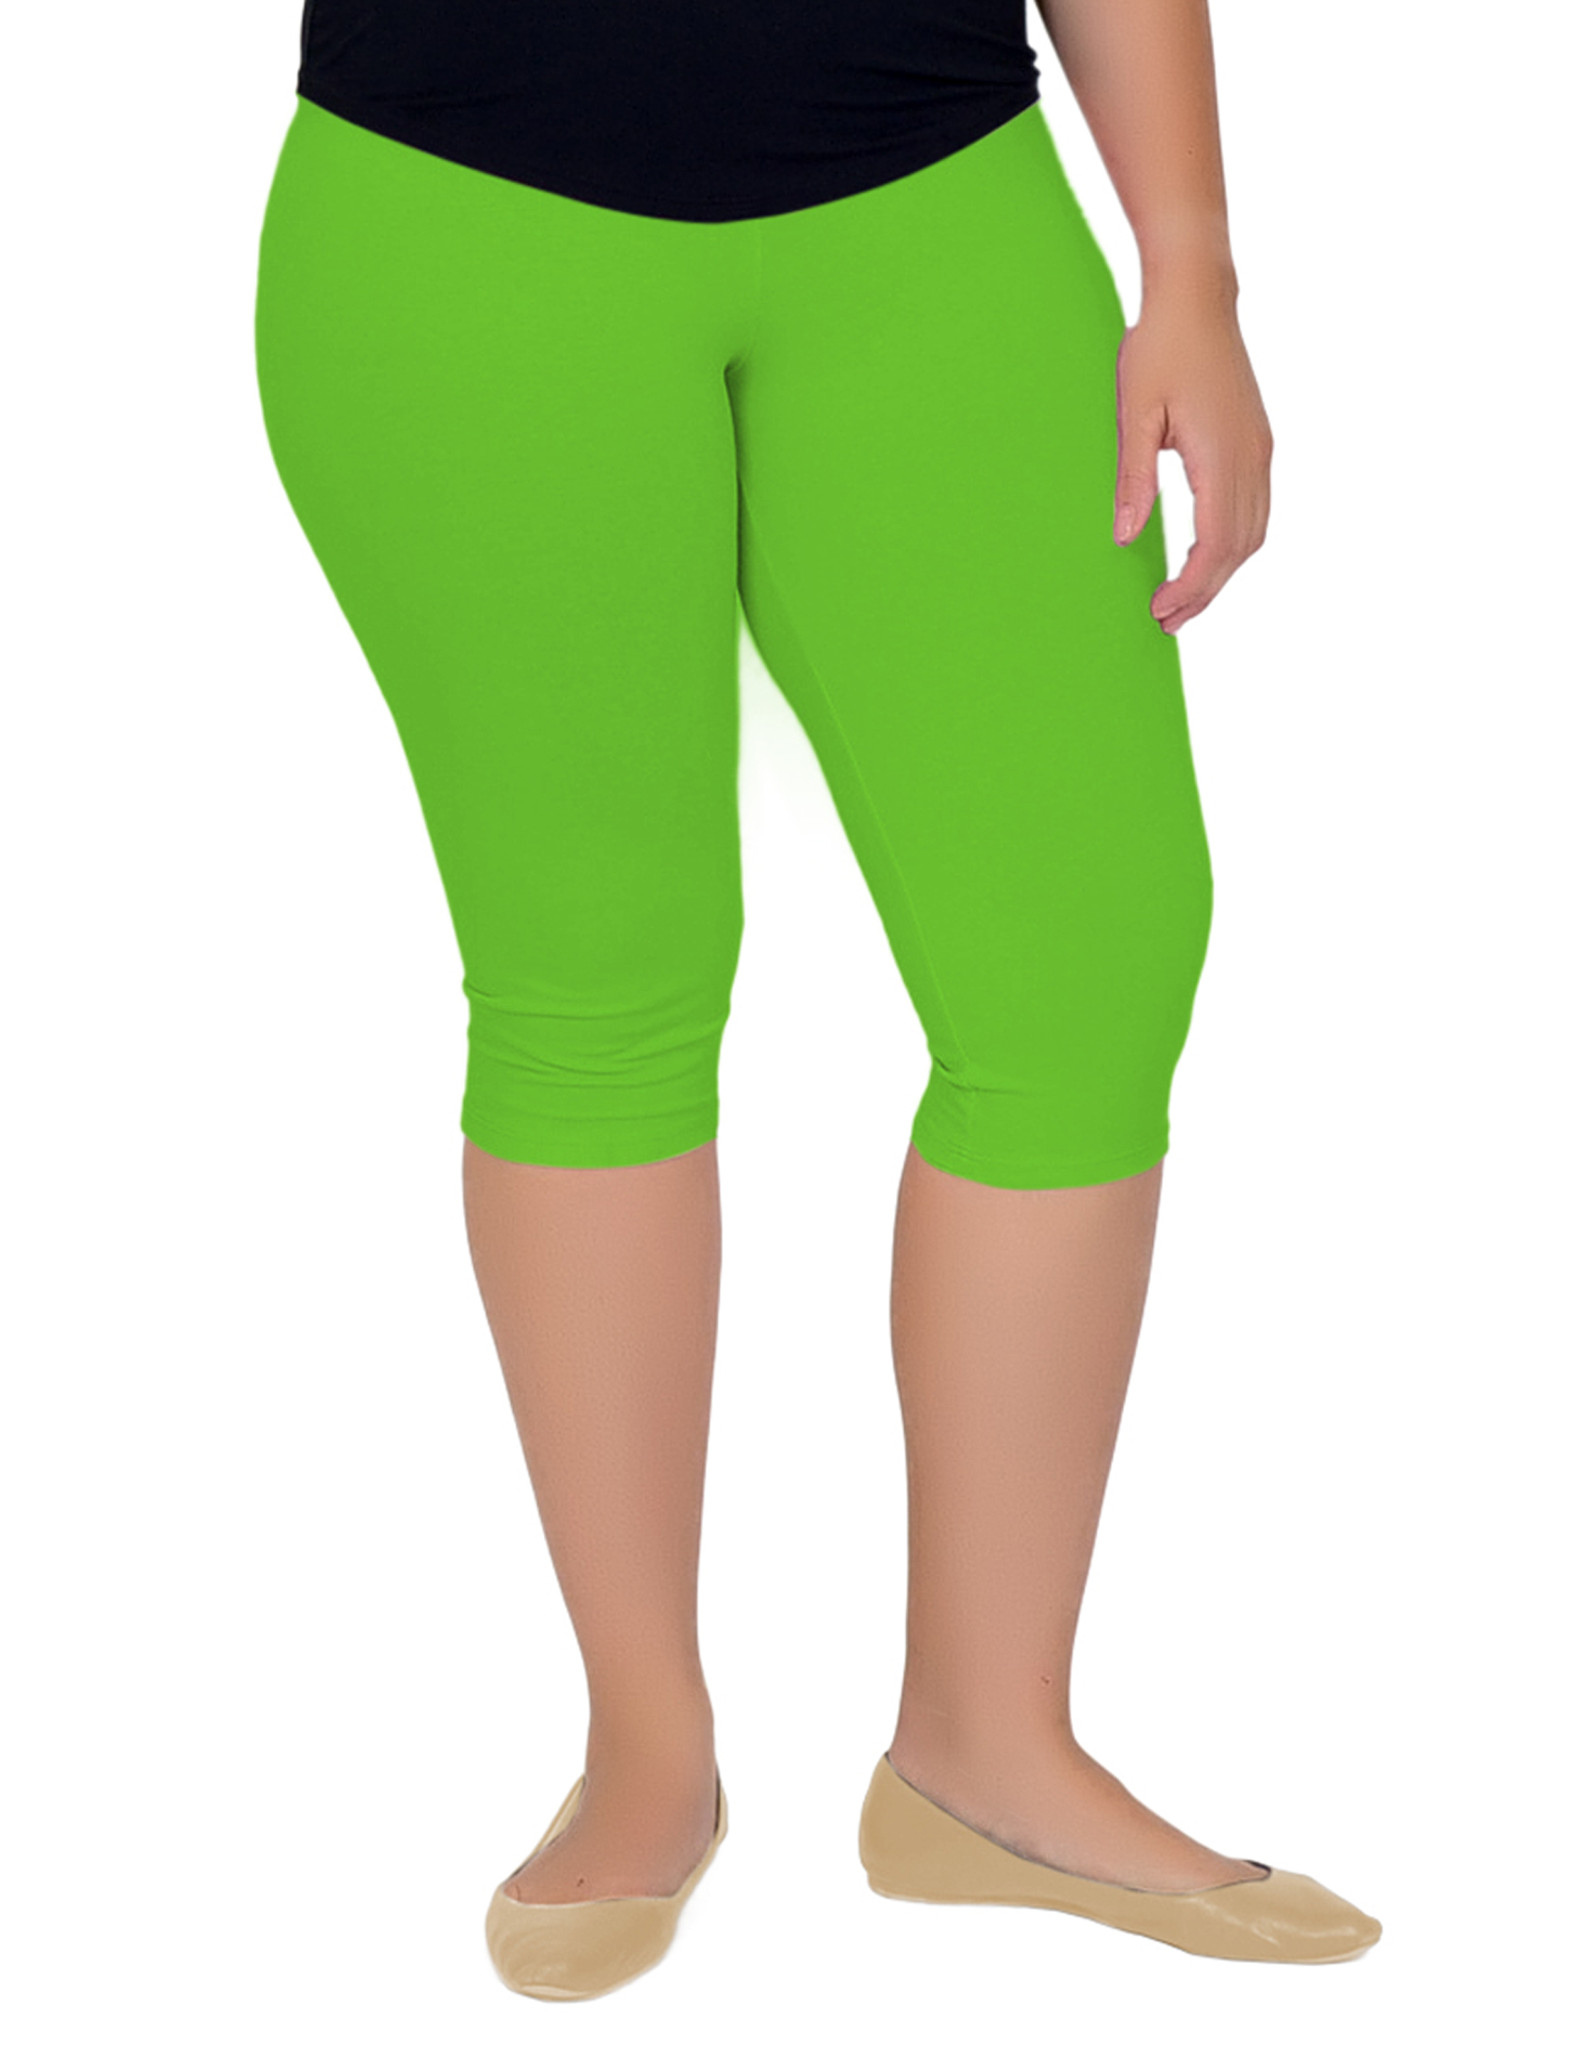 Plus Size Circuit Knee-Length Leggings - X-Large (12-14) / Beige